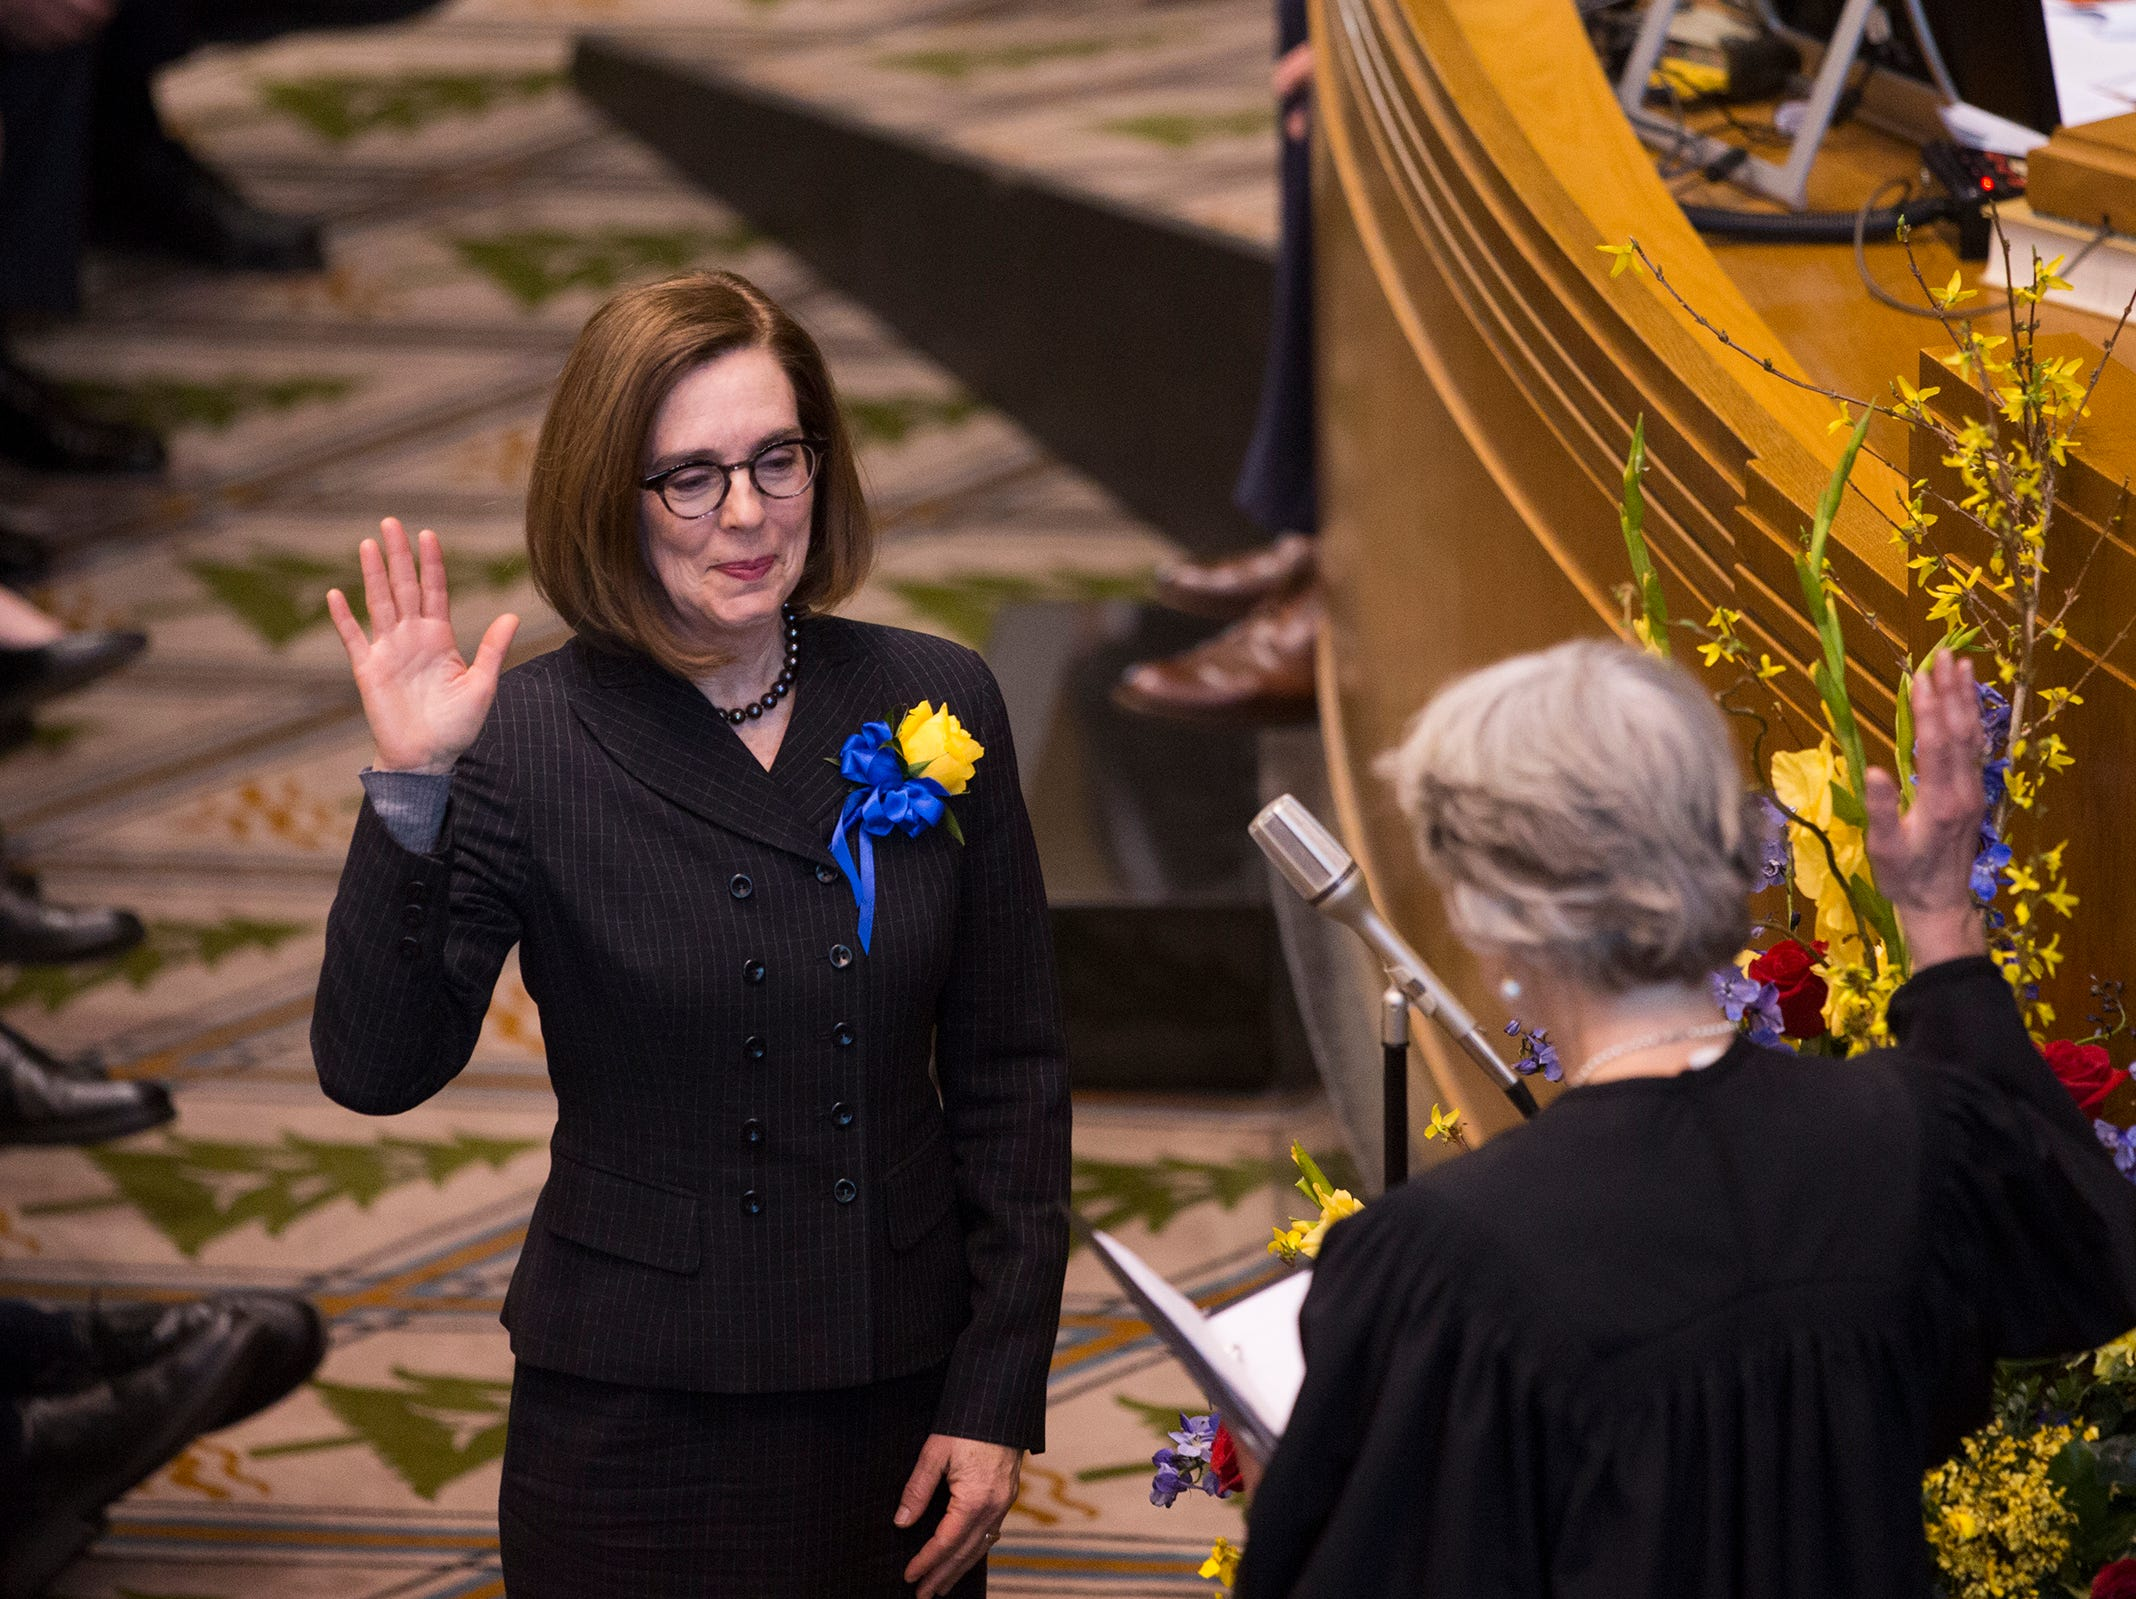 Governor Kate Brown is sworn in at her inauguration at the Oregon State Capitol on Jan. 14, 2019.